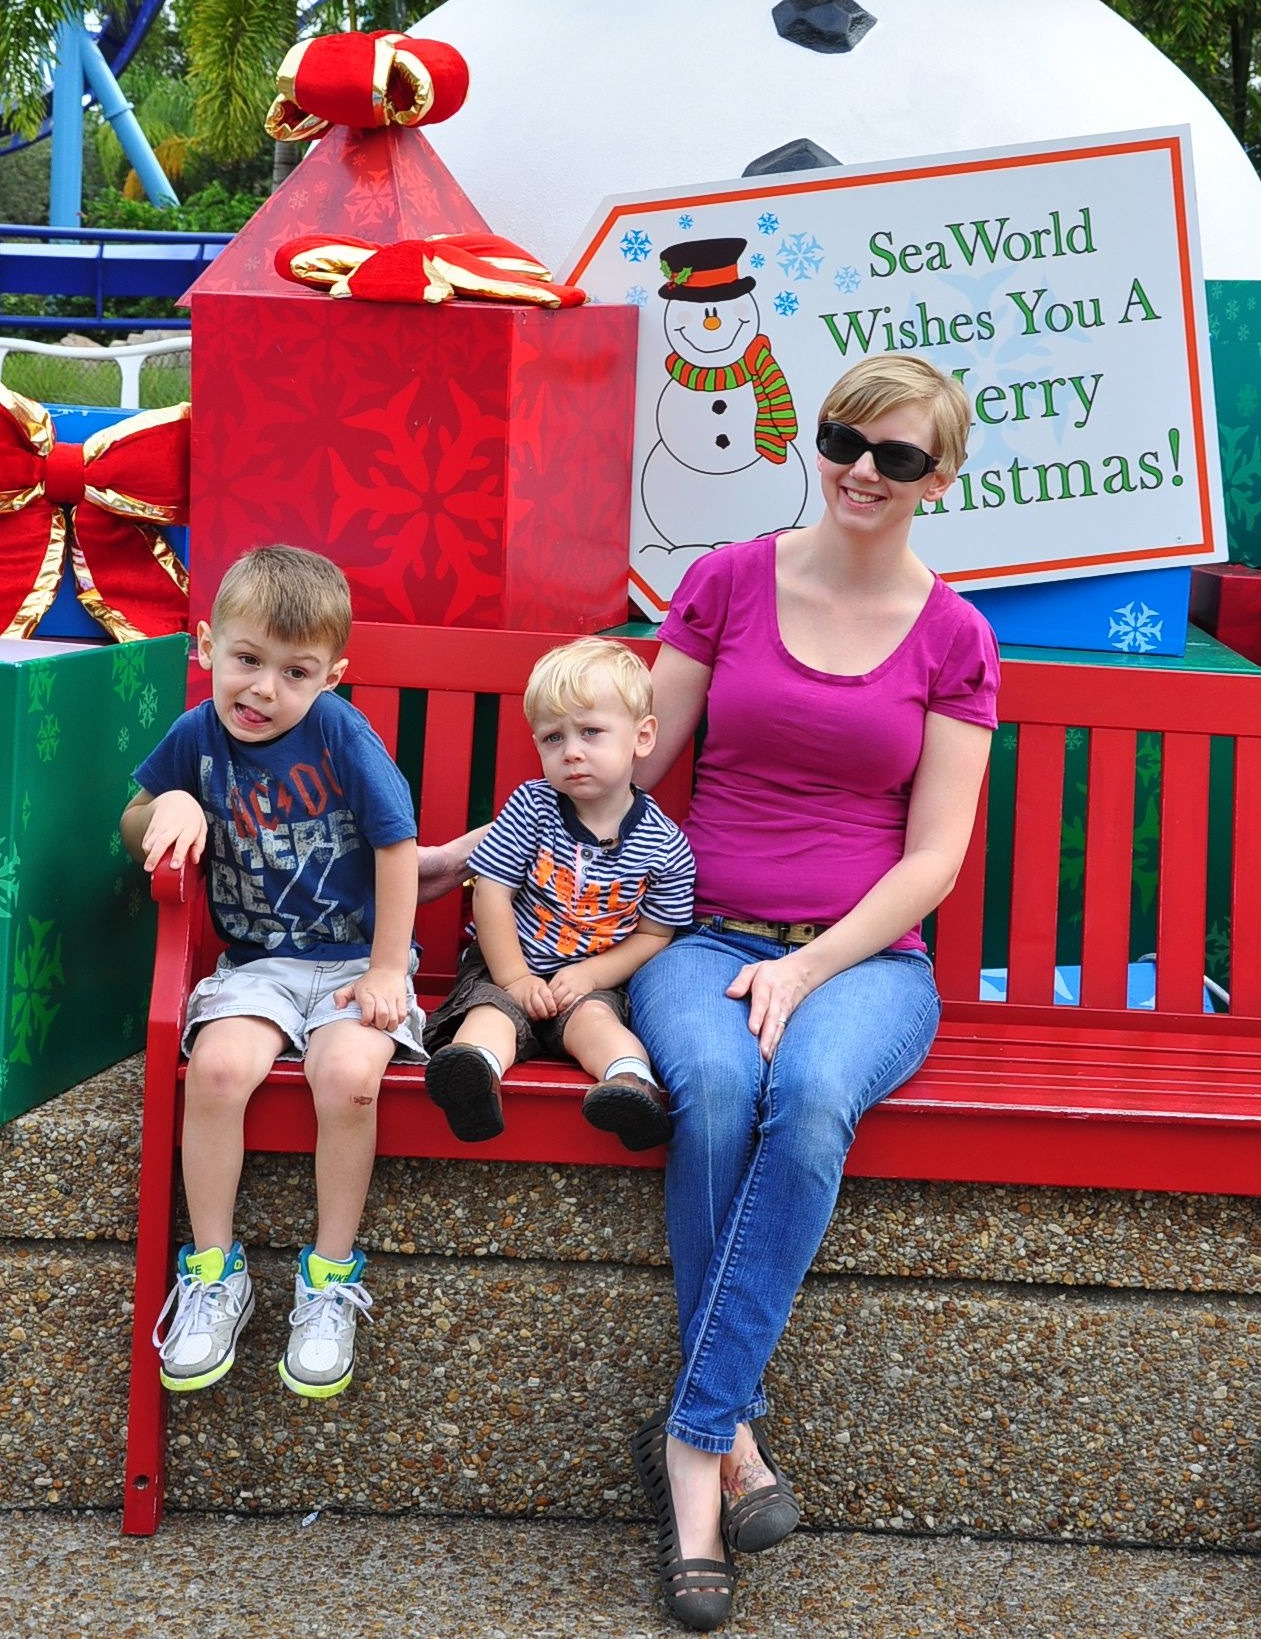 December 3 at SeaWorld.